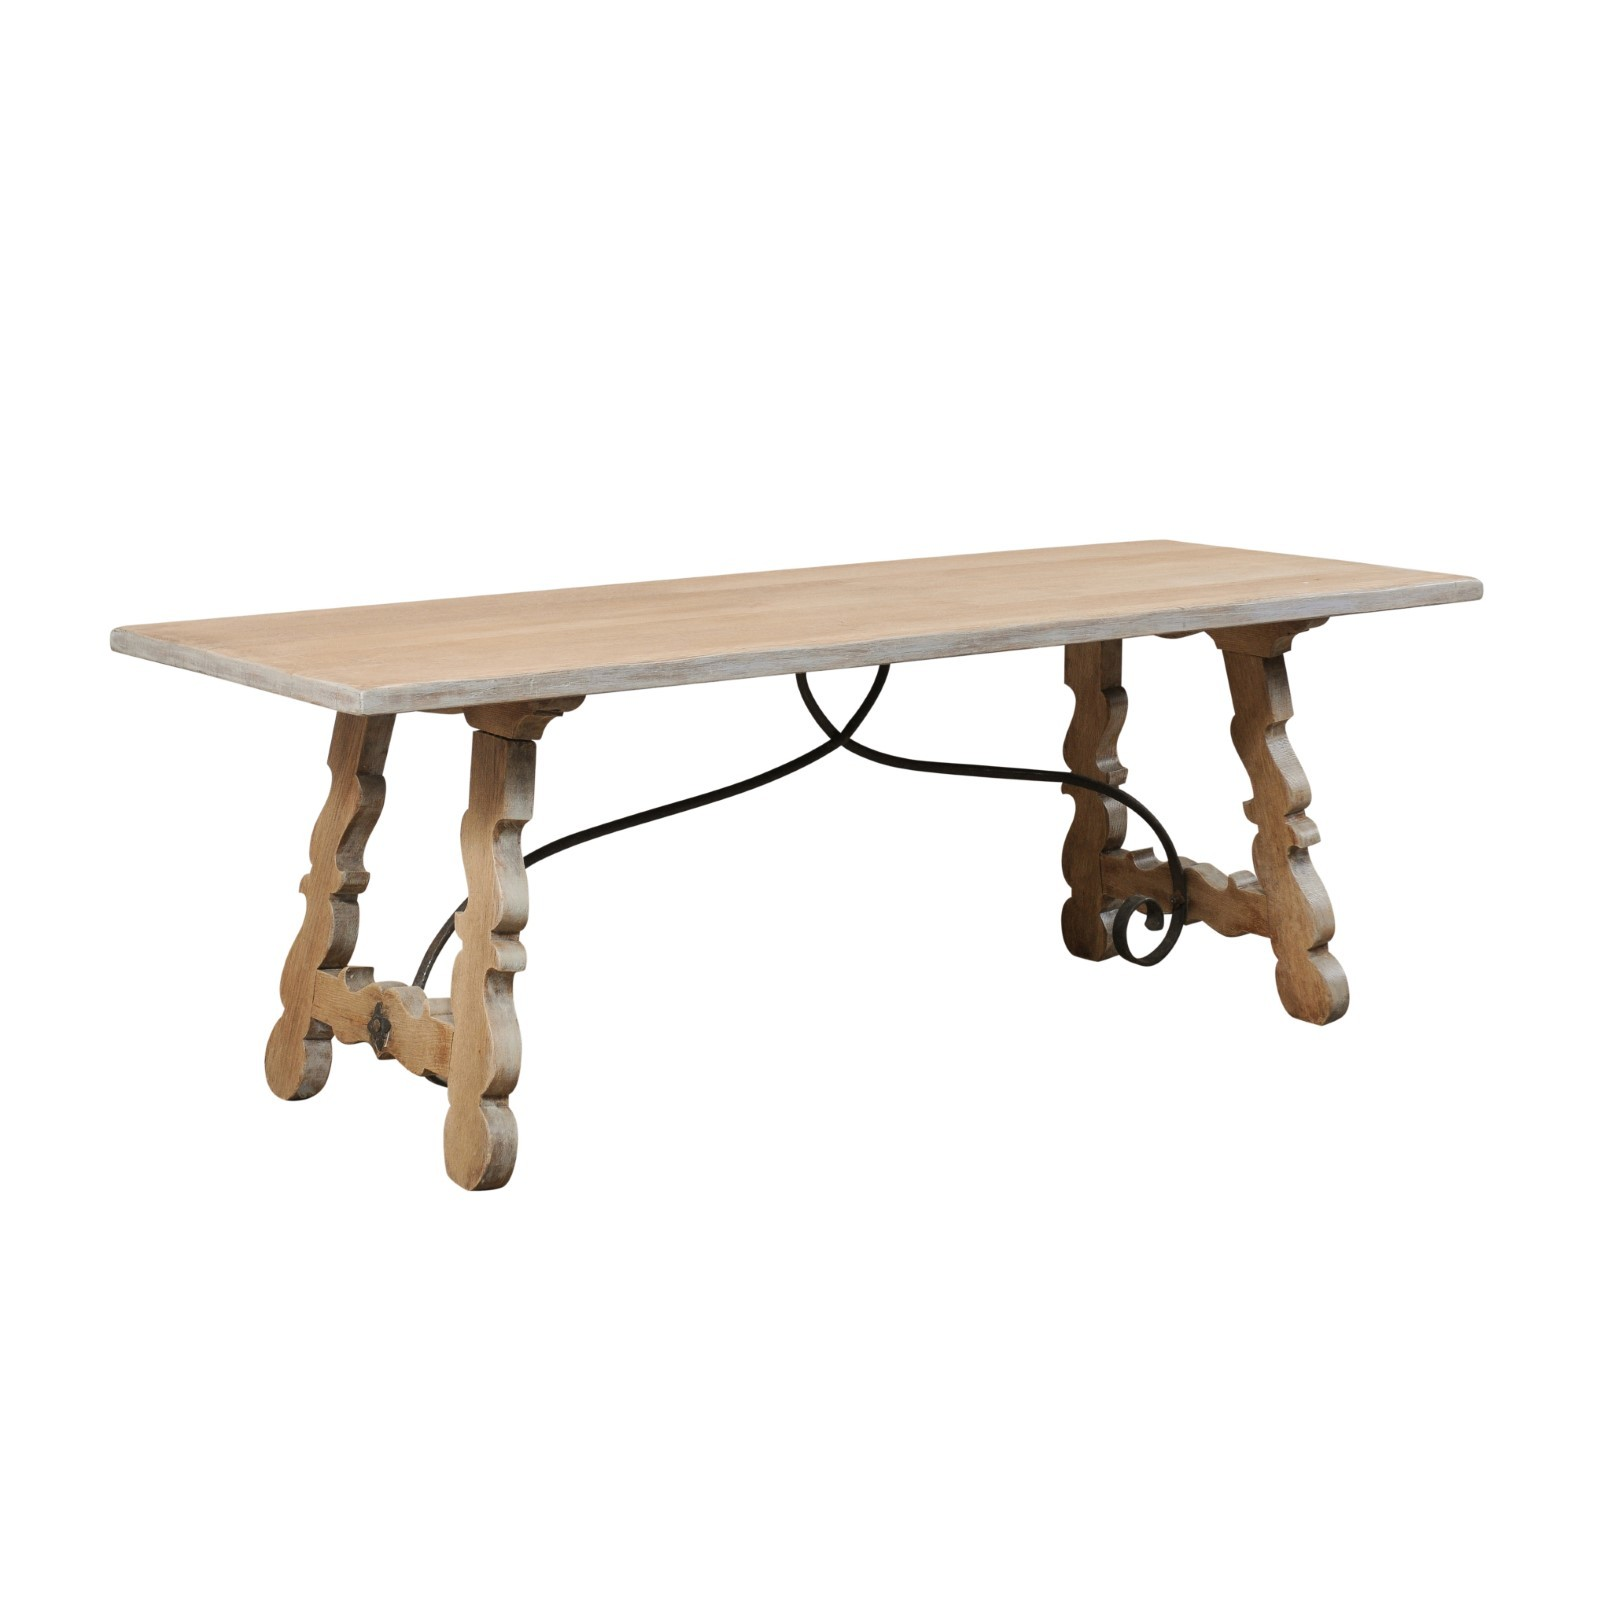 French Oak Trestle Table w/Iron Stretcher